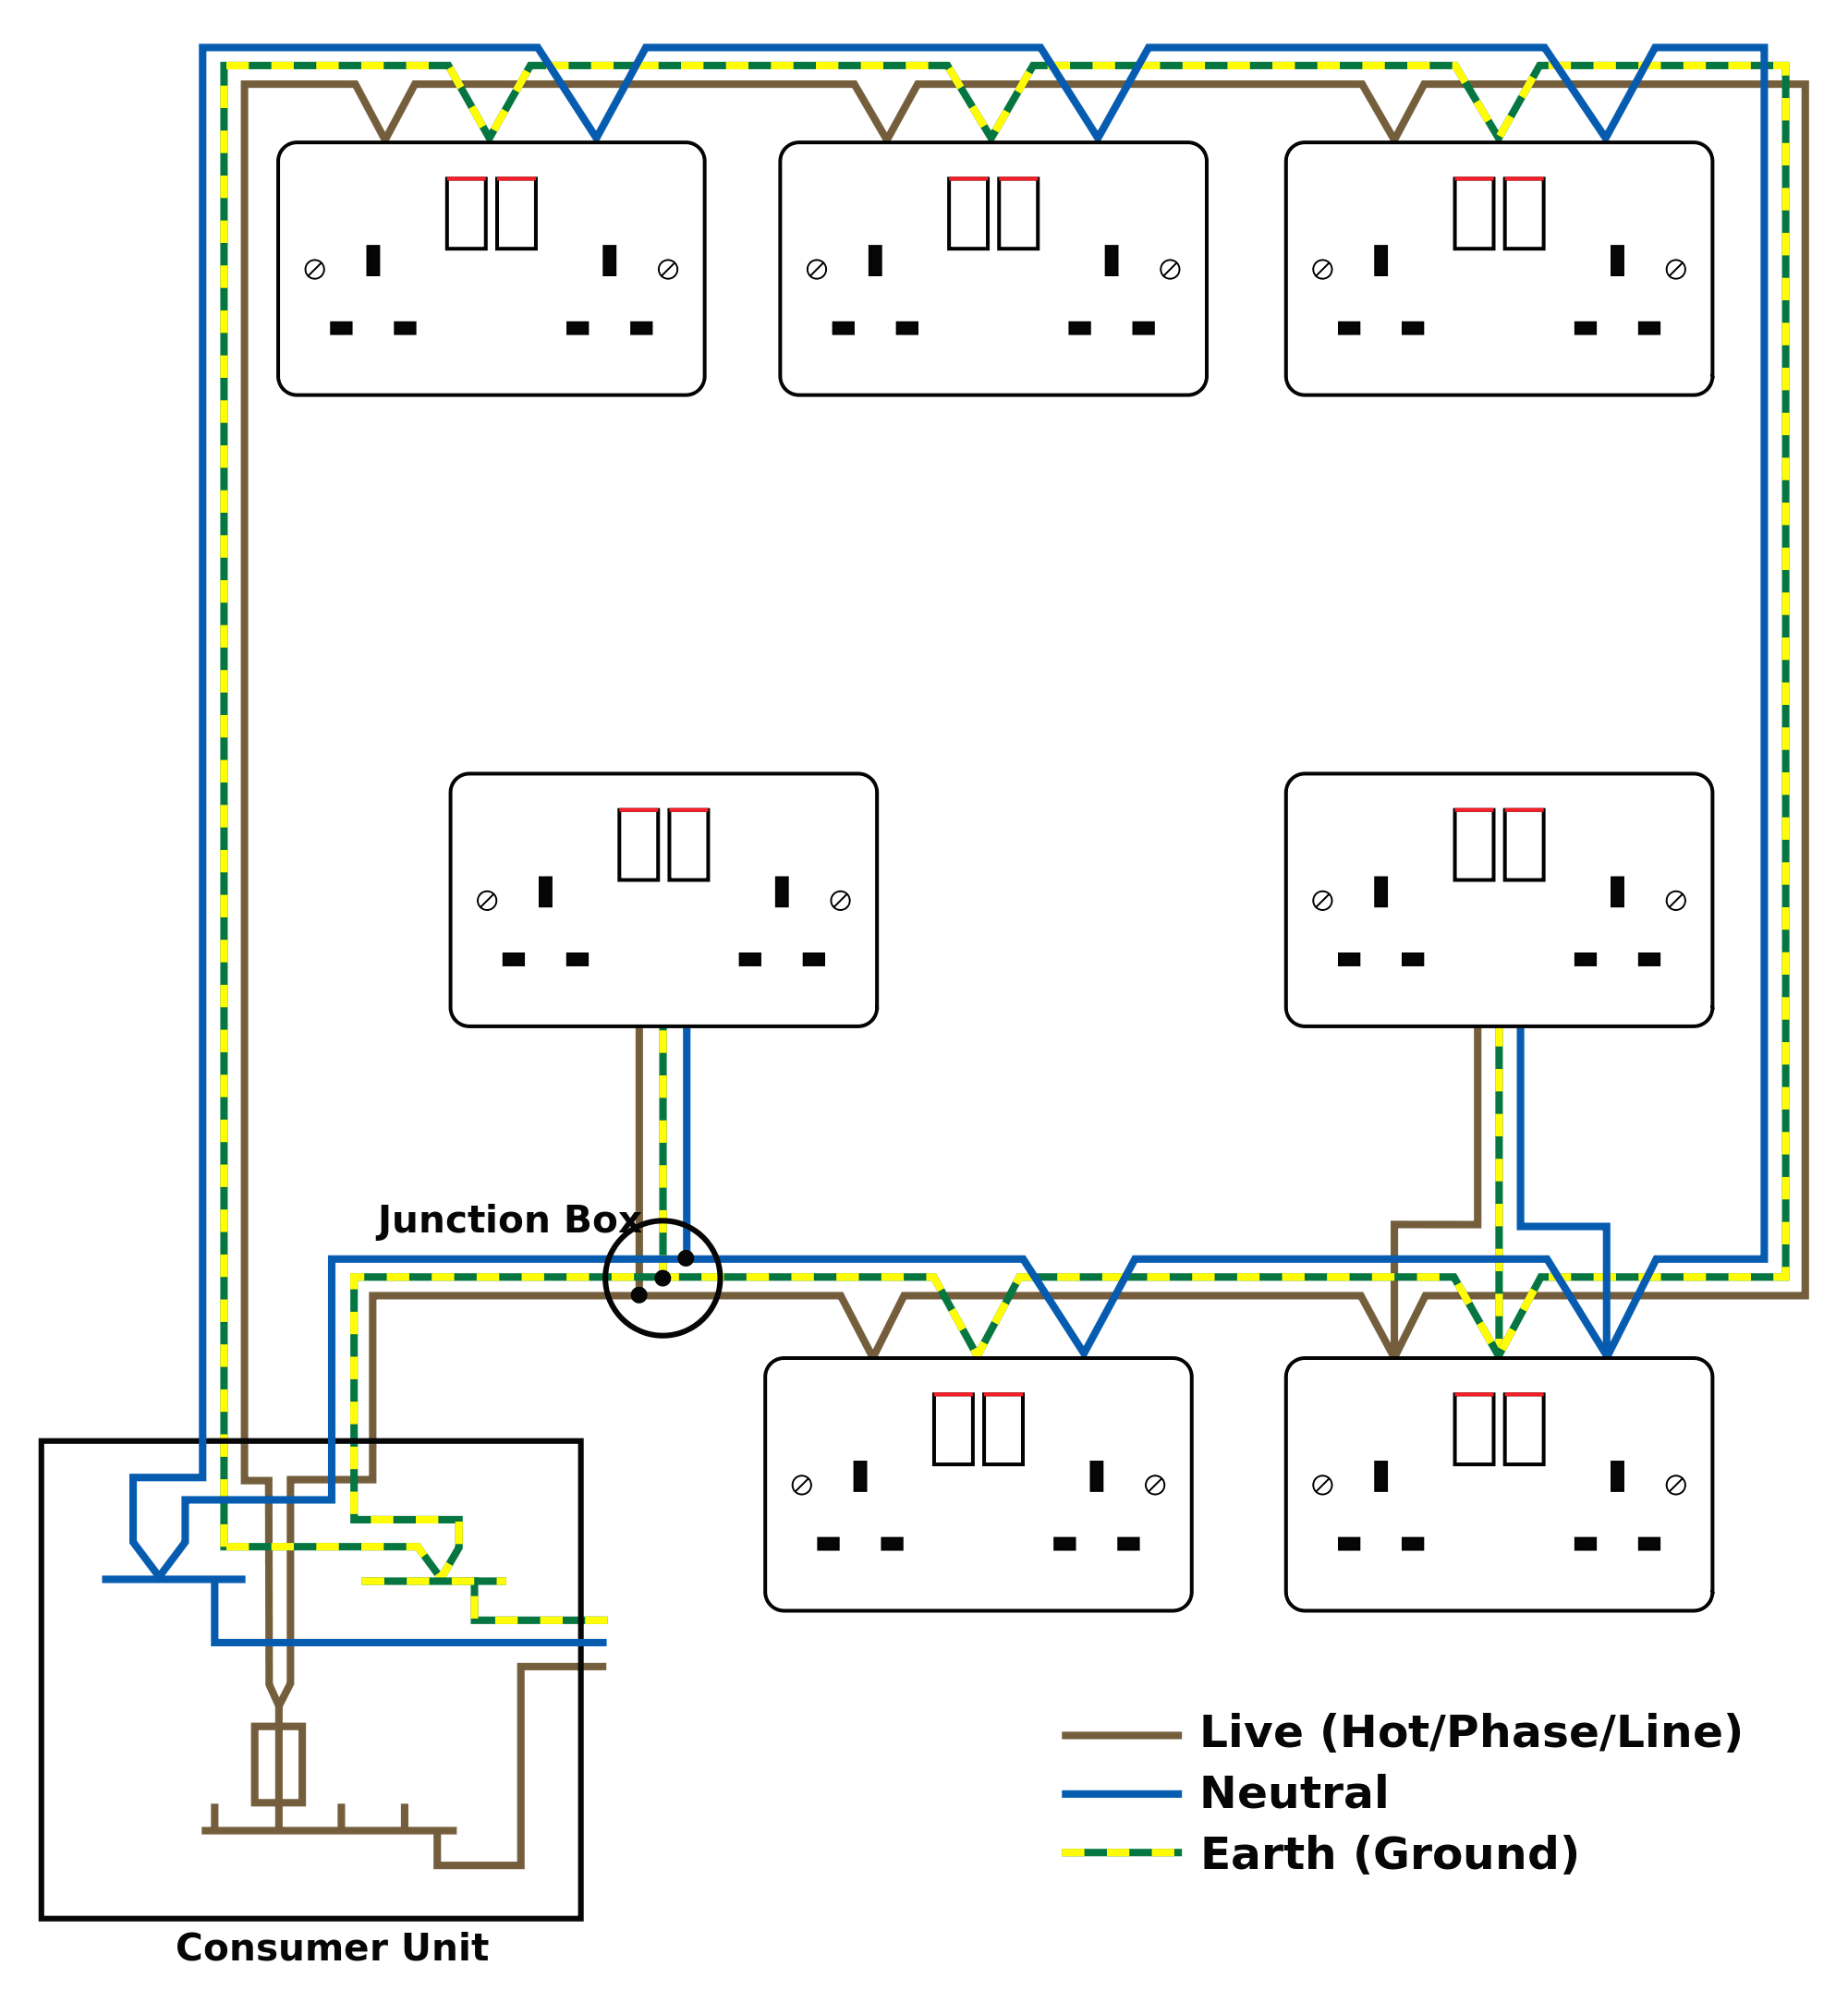 new wiring diagram for house lighting circuit pdf #diagram #diagramsample  #diagramtemplate check mo… | home electrical wiring, electrical wiring, residential  wiring  pinterest